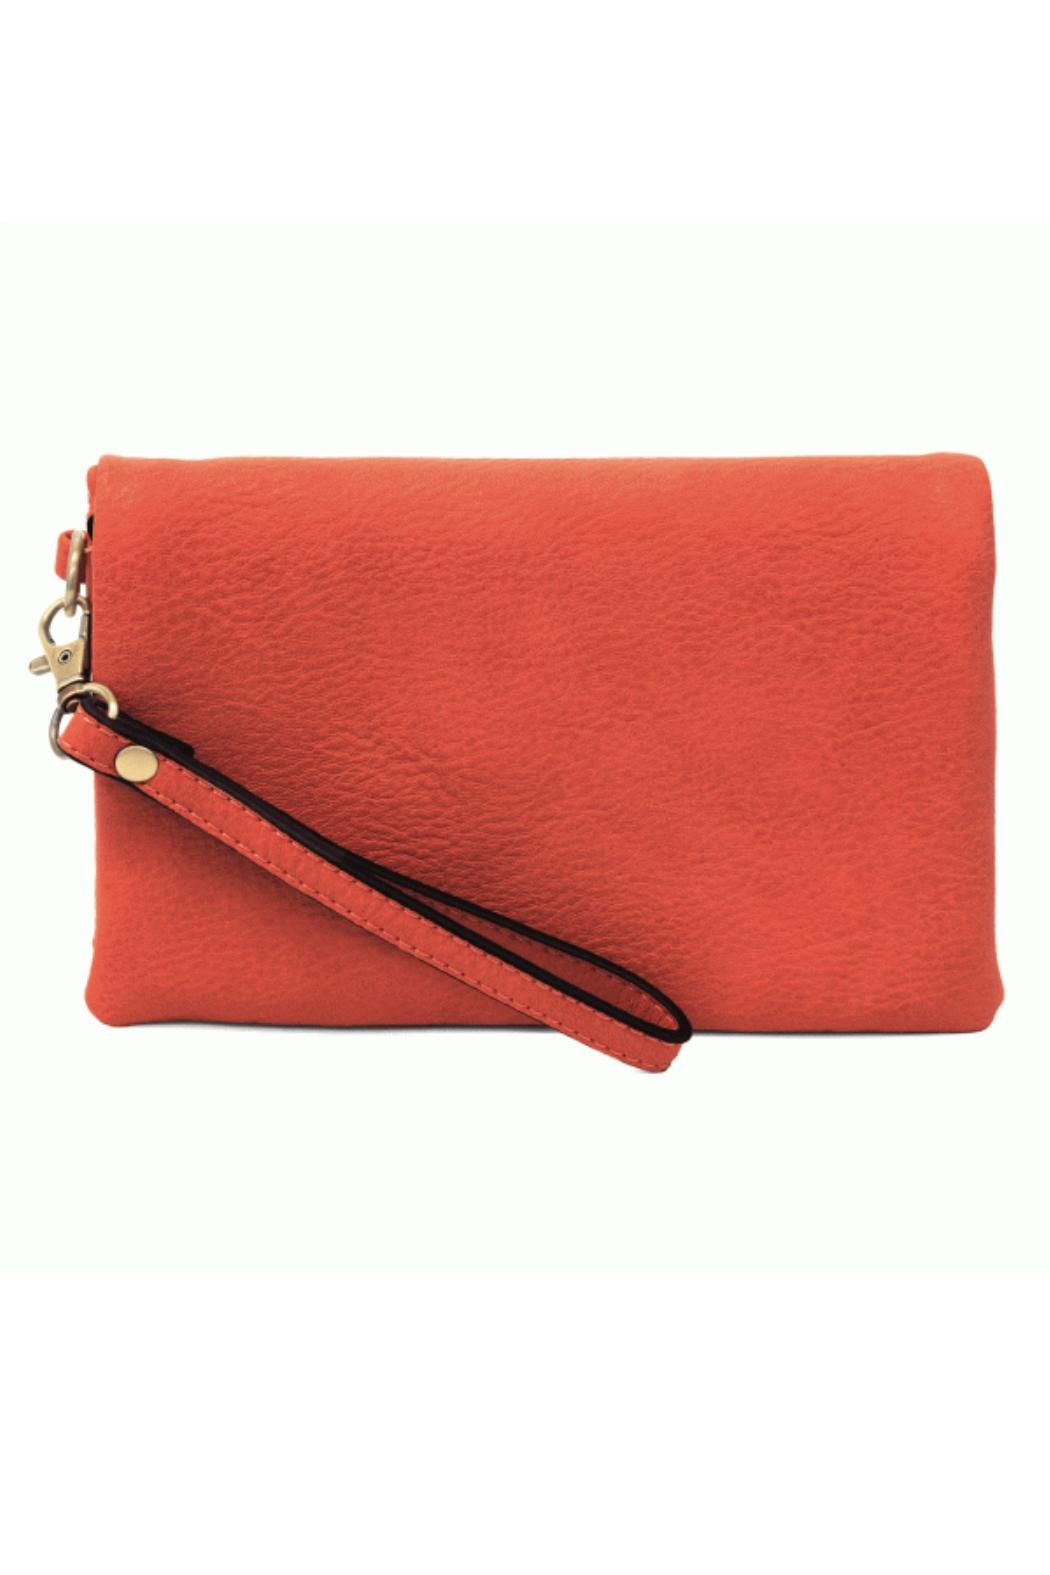 Joy Accessories Kate Crossbody - Geranium - Front Cropped Image